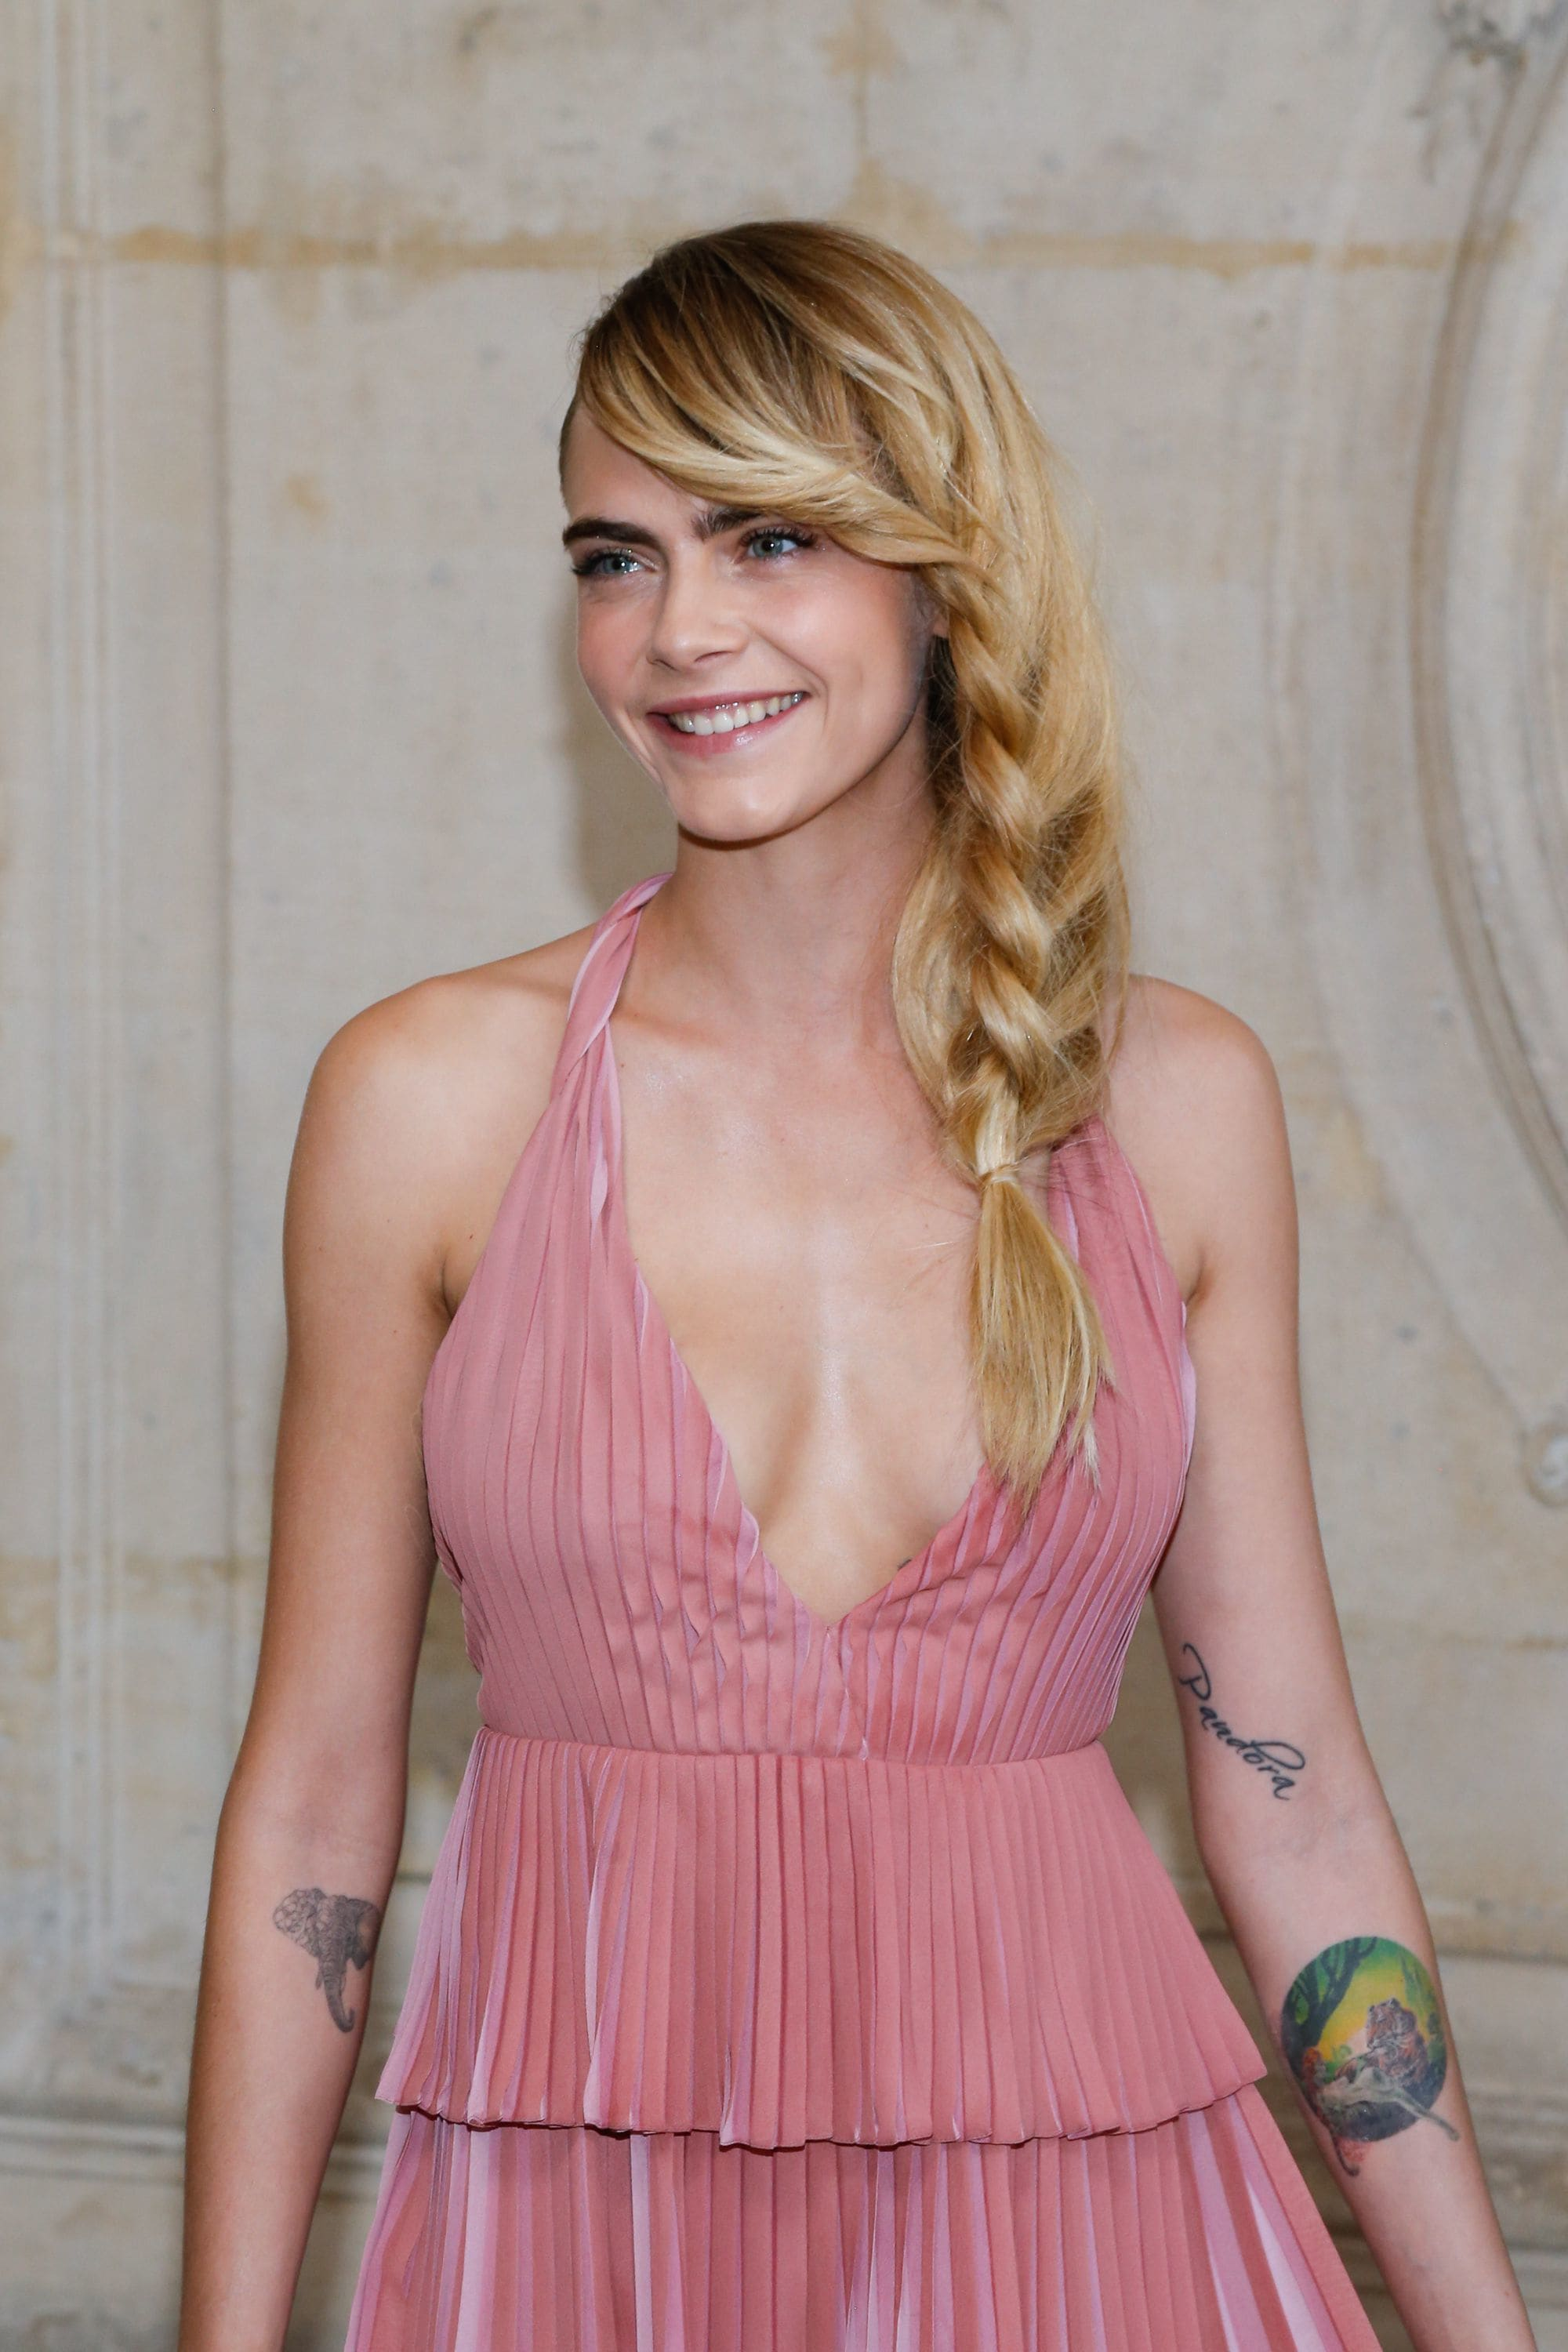 Thick hairstyles: Shot of Cara Delevinge